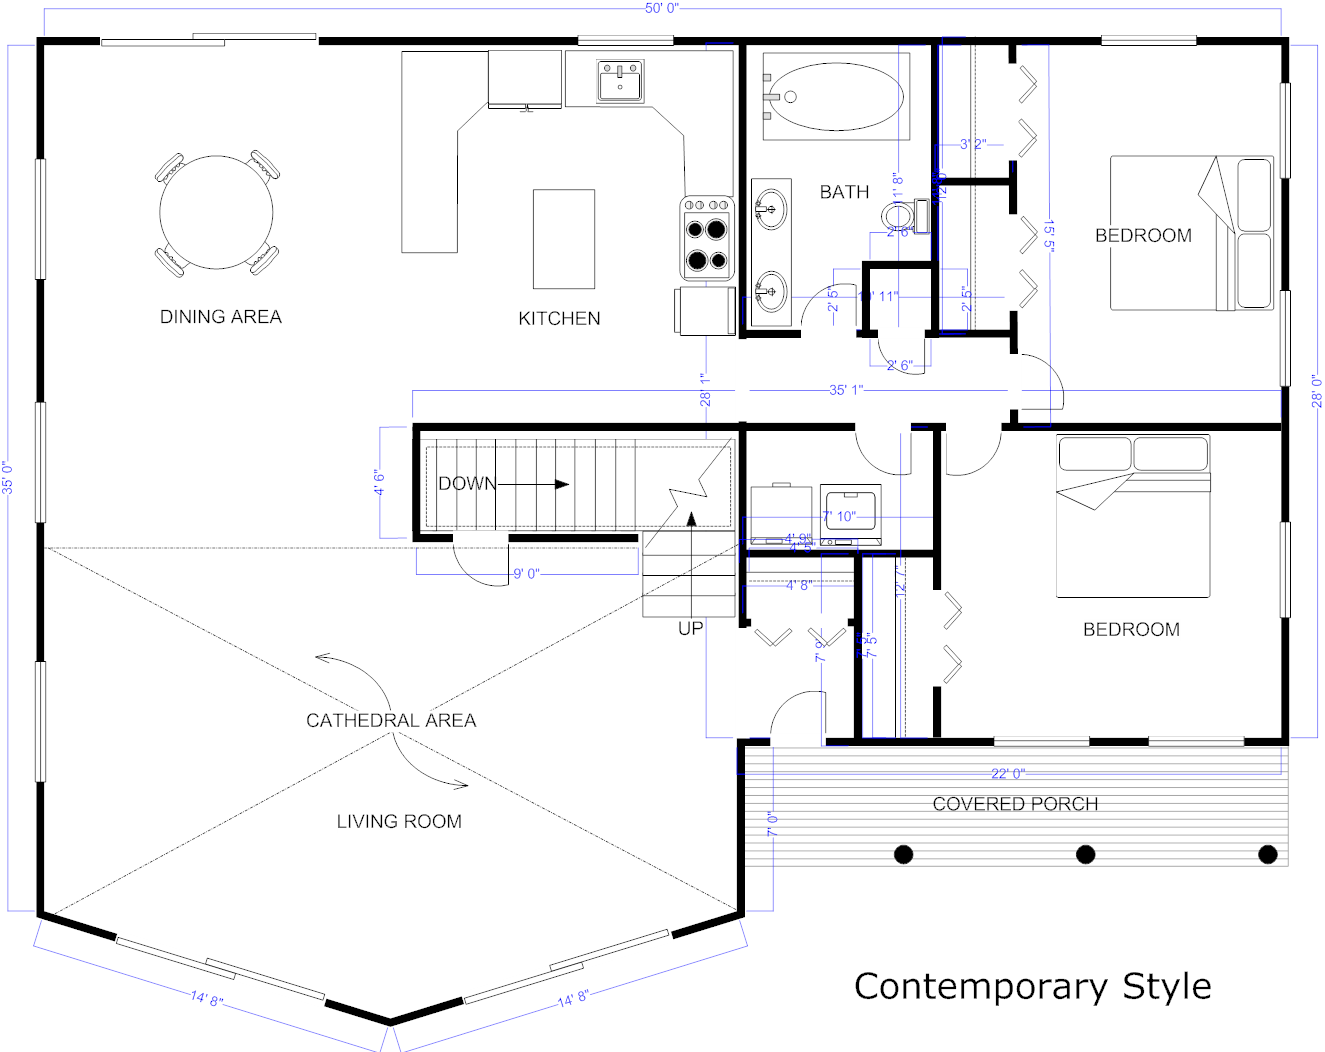 Blueprint maker free download online app for Bedroom blueprint maker